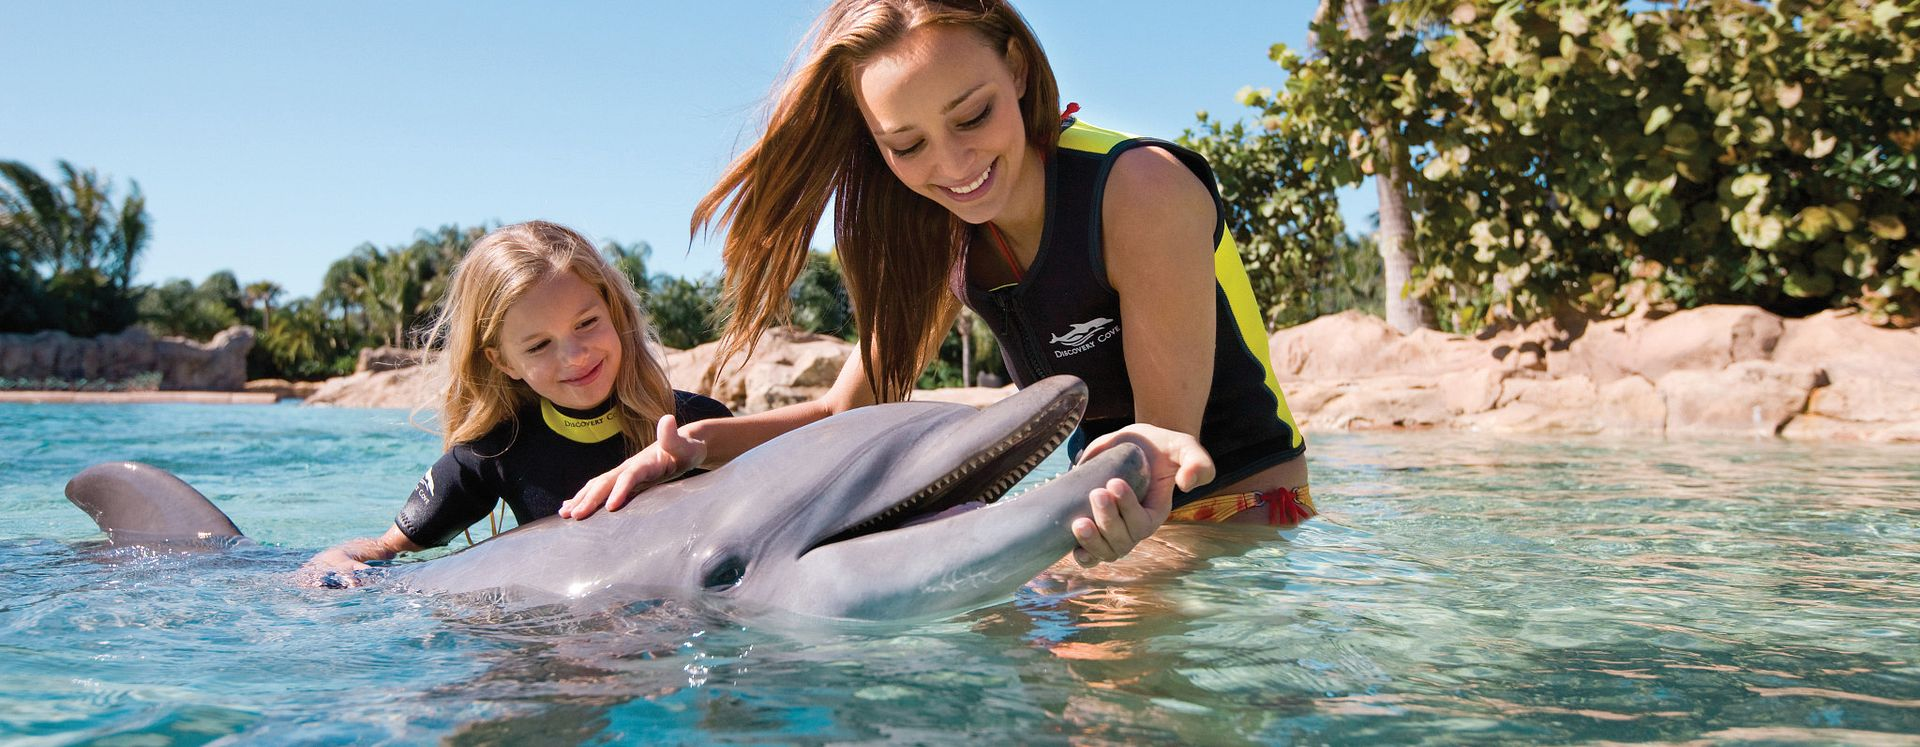 Discovery Cove swimming with dolphin